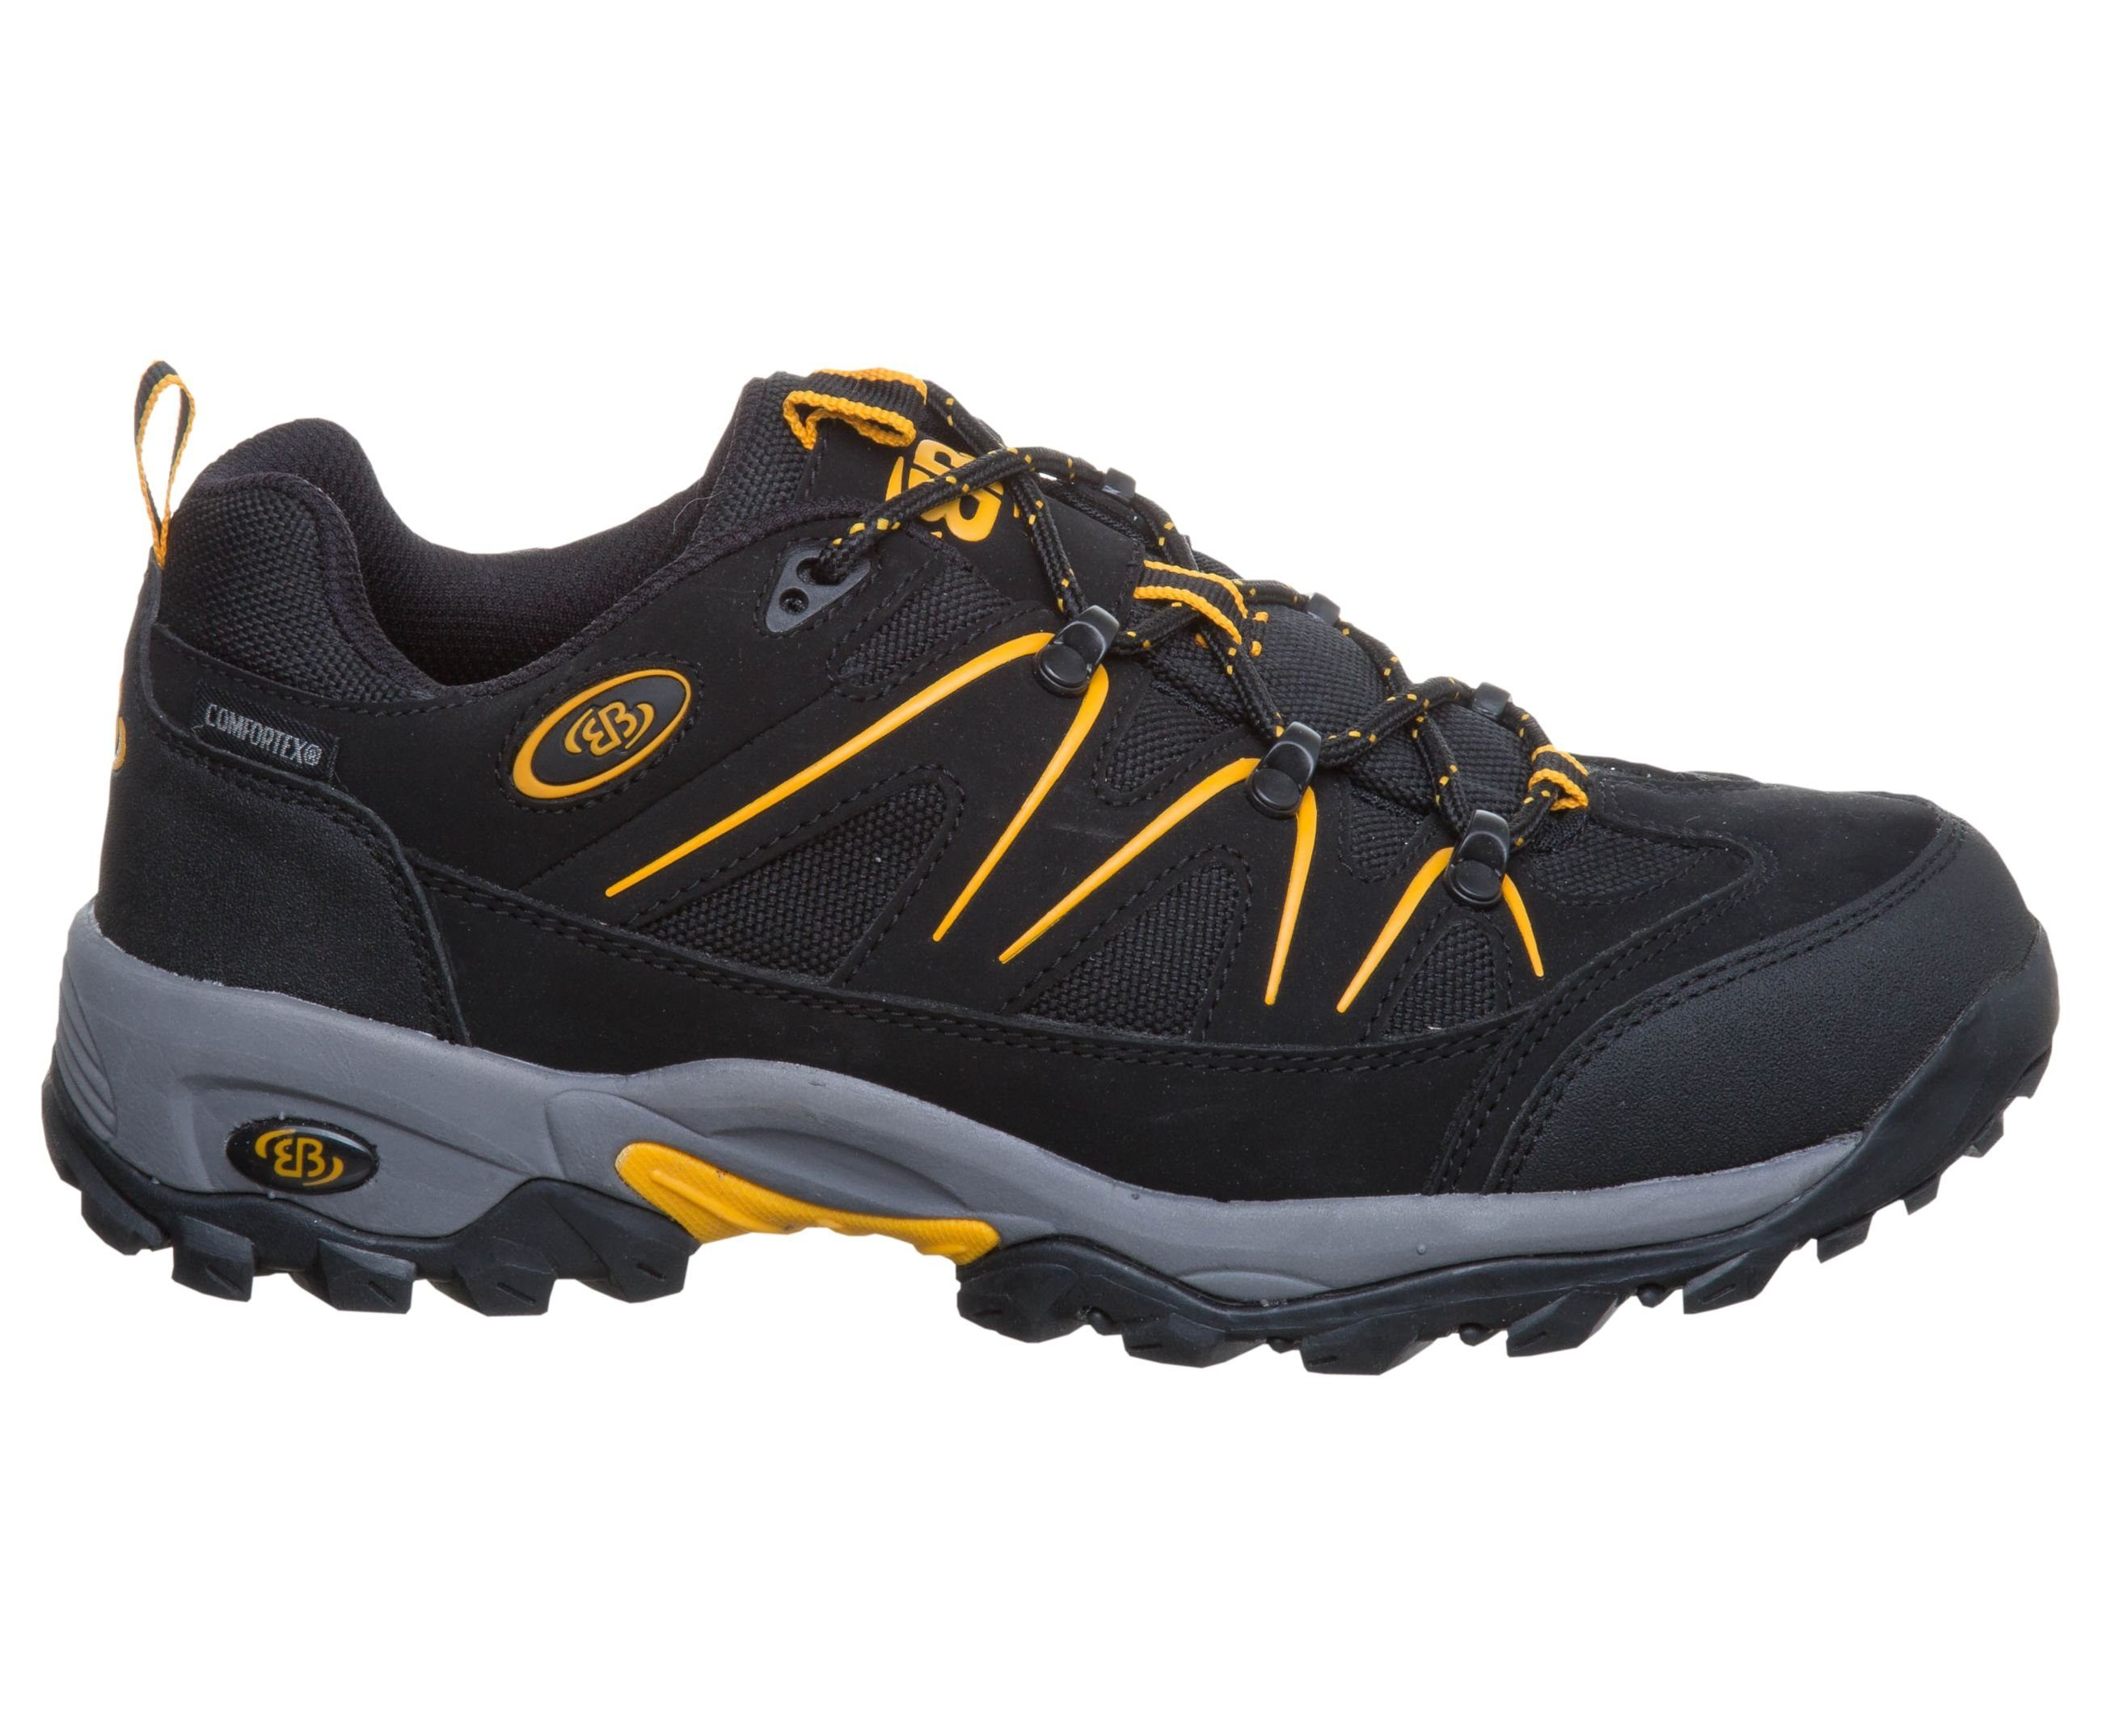 BRÜTTING Outdoorschuh Mount Hunter Low Outdoorschuh online kaufen  schwarz